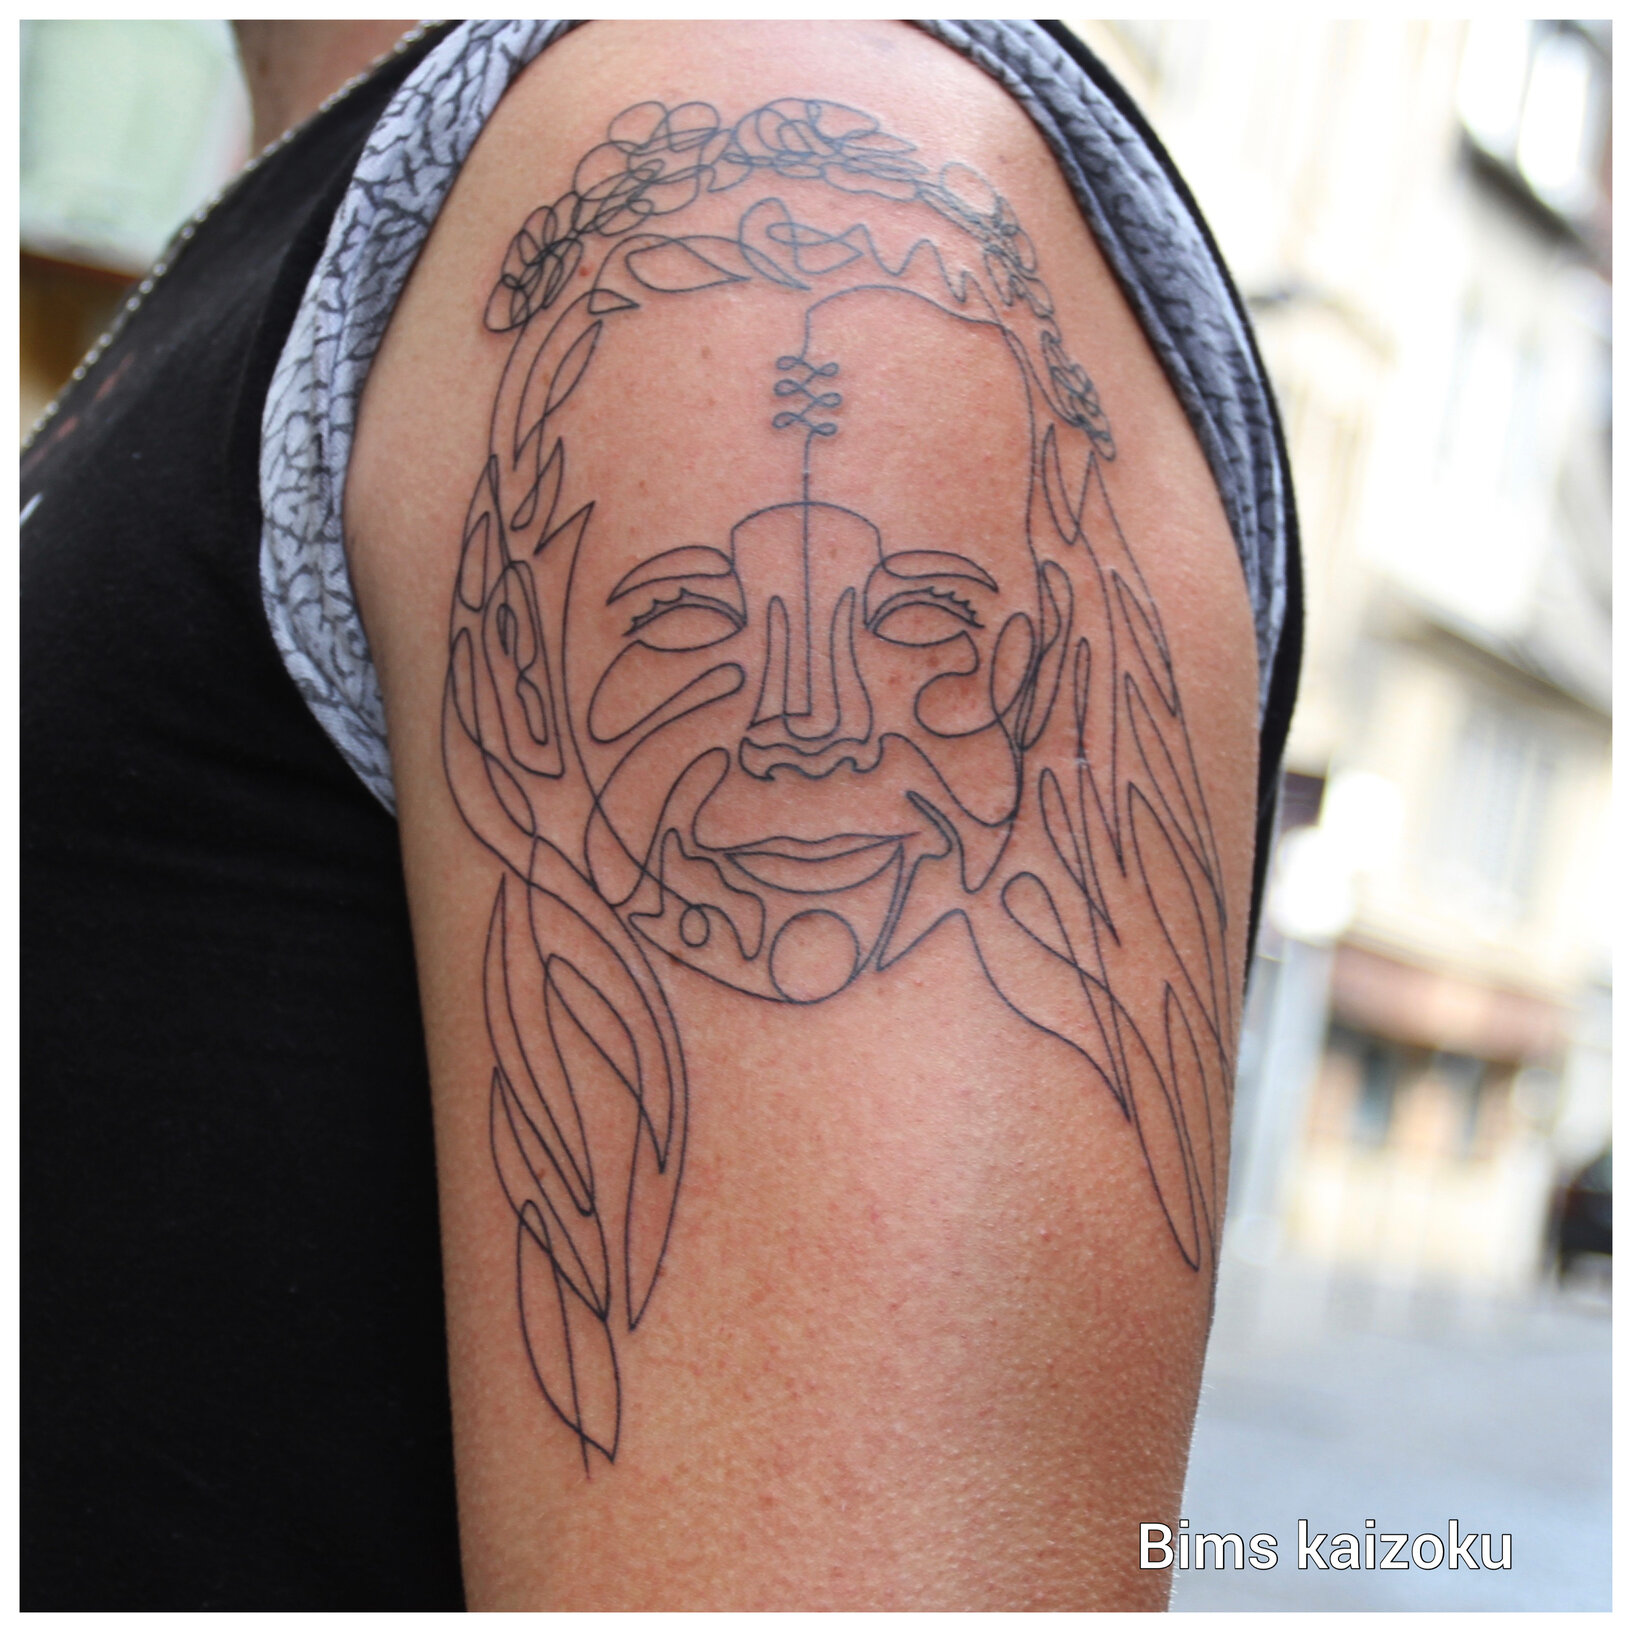 bims-kaizoku-tattoo-artist-oneline-woman-shoulder